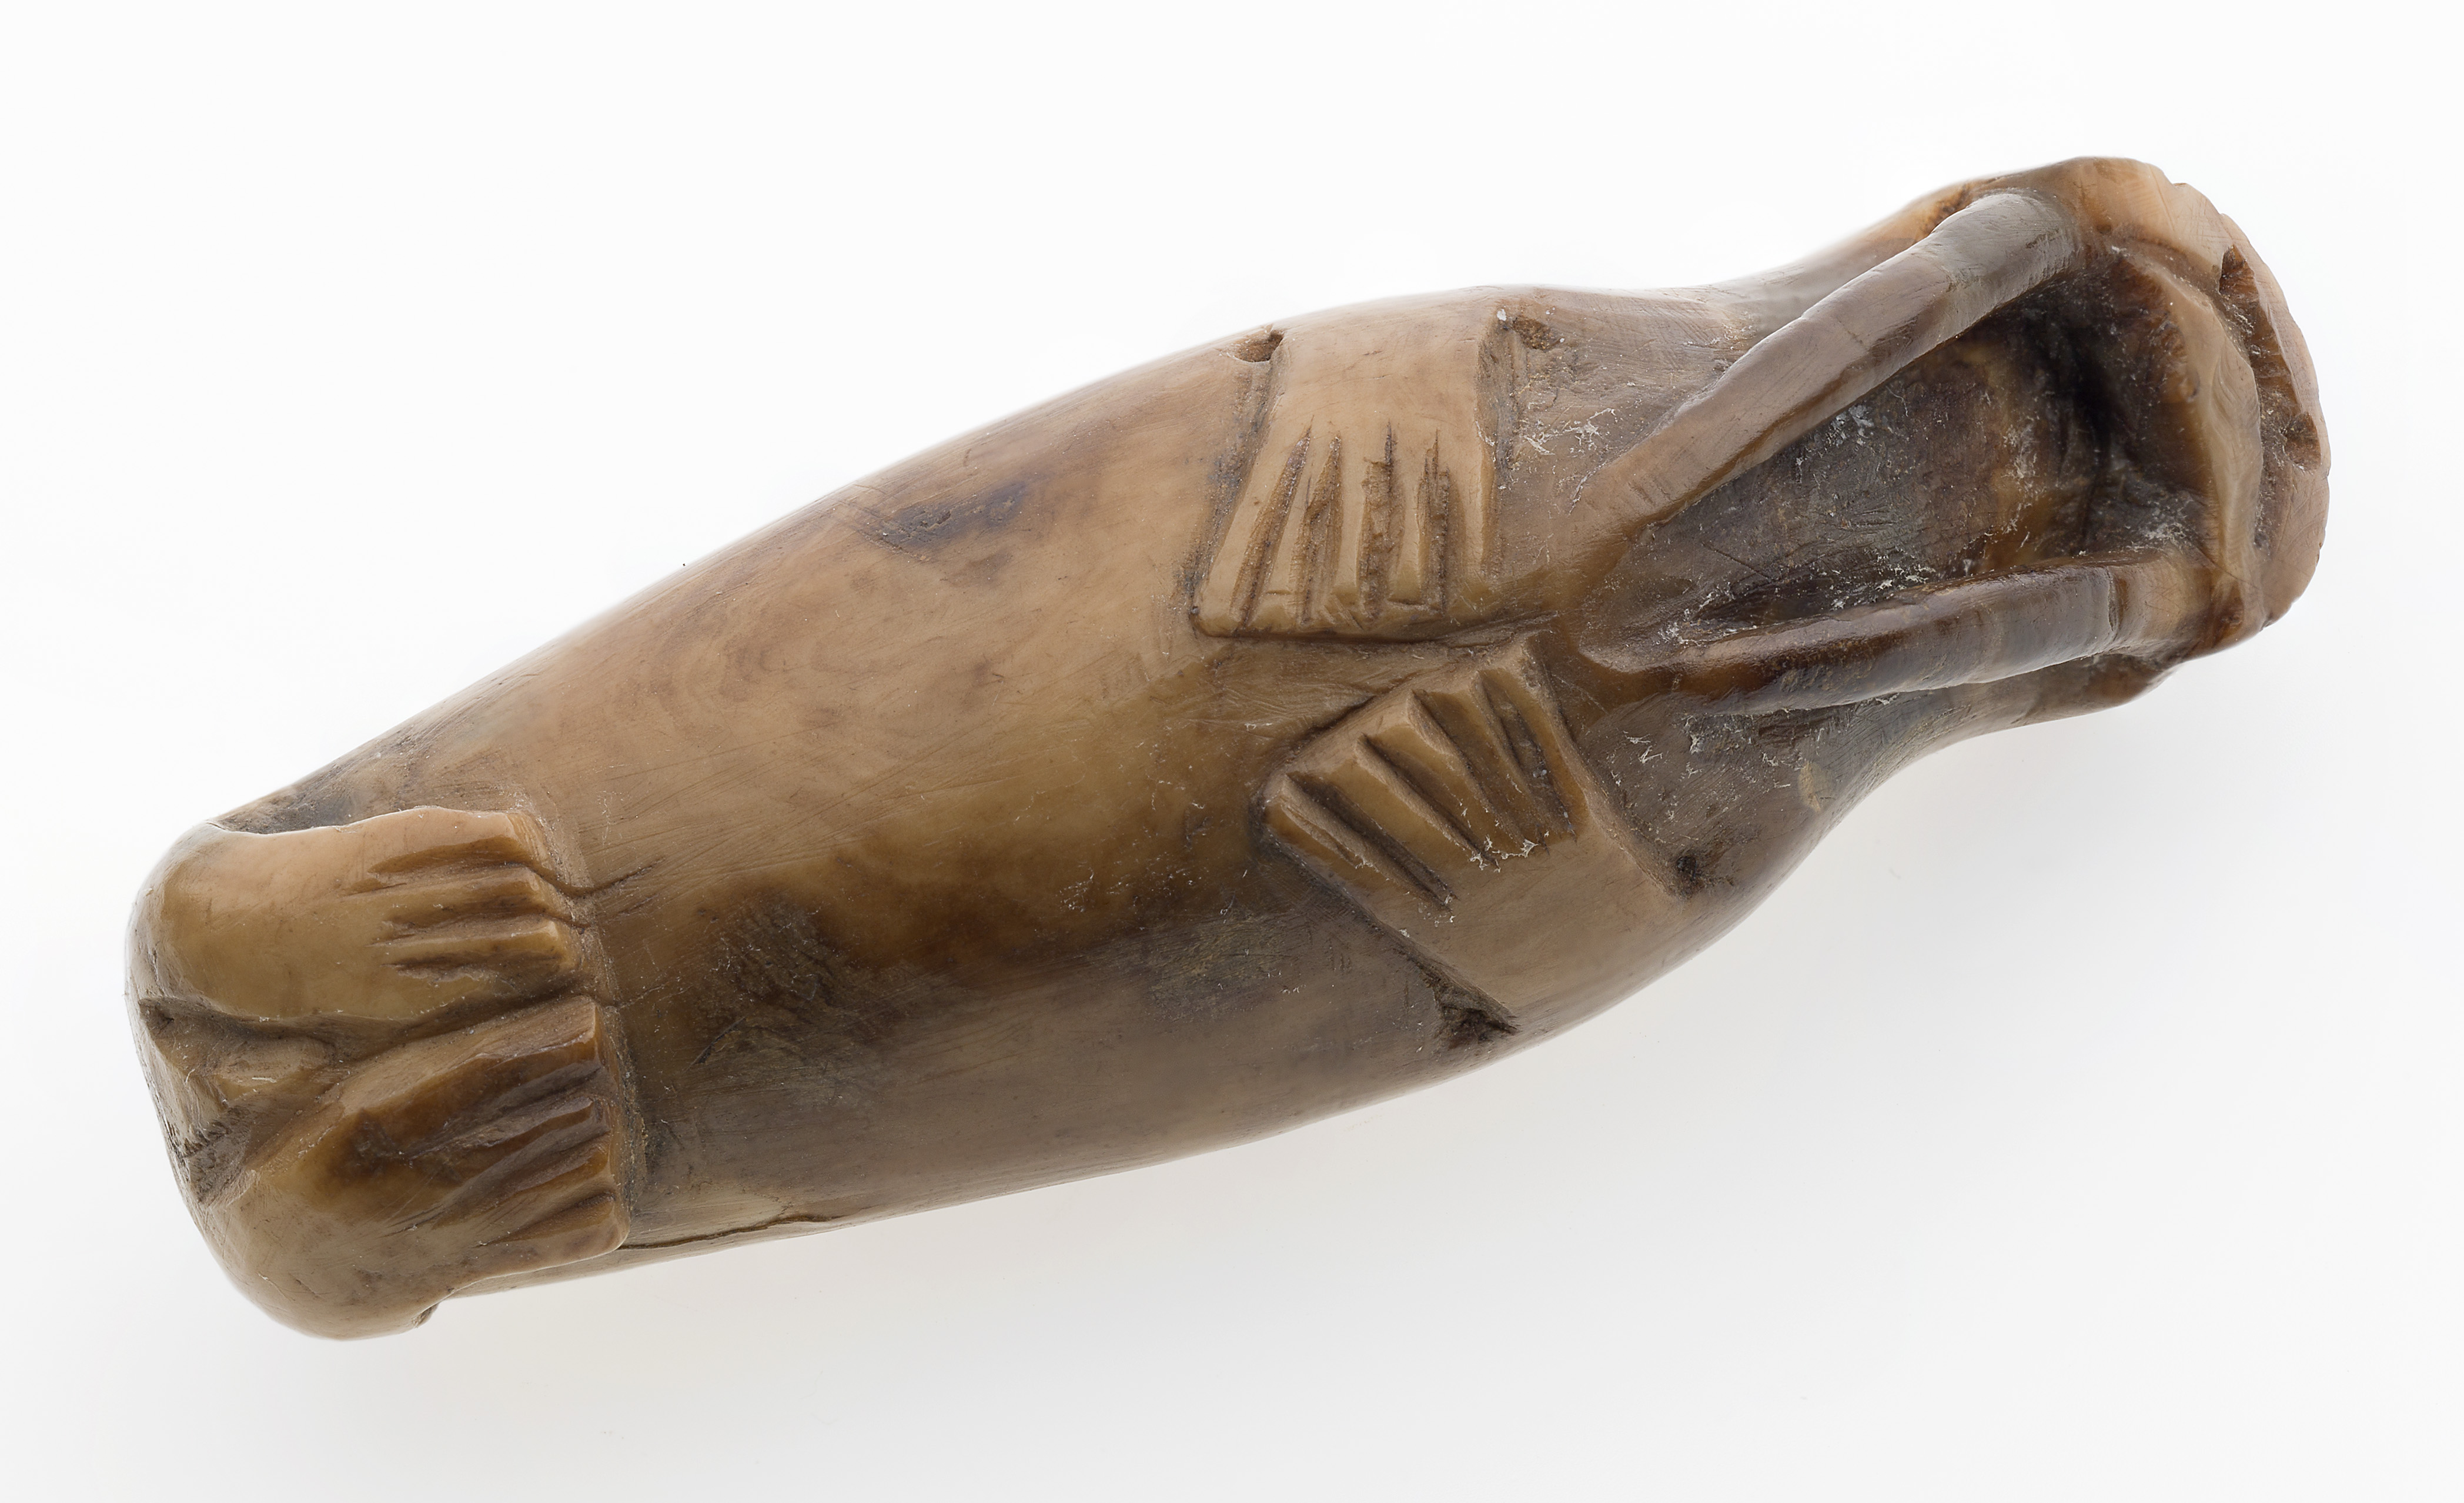 A tiny walrus carving from medieval Trondheim